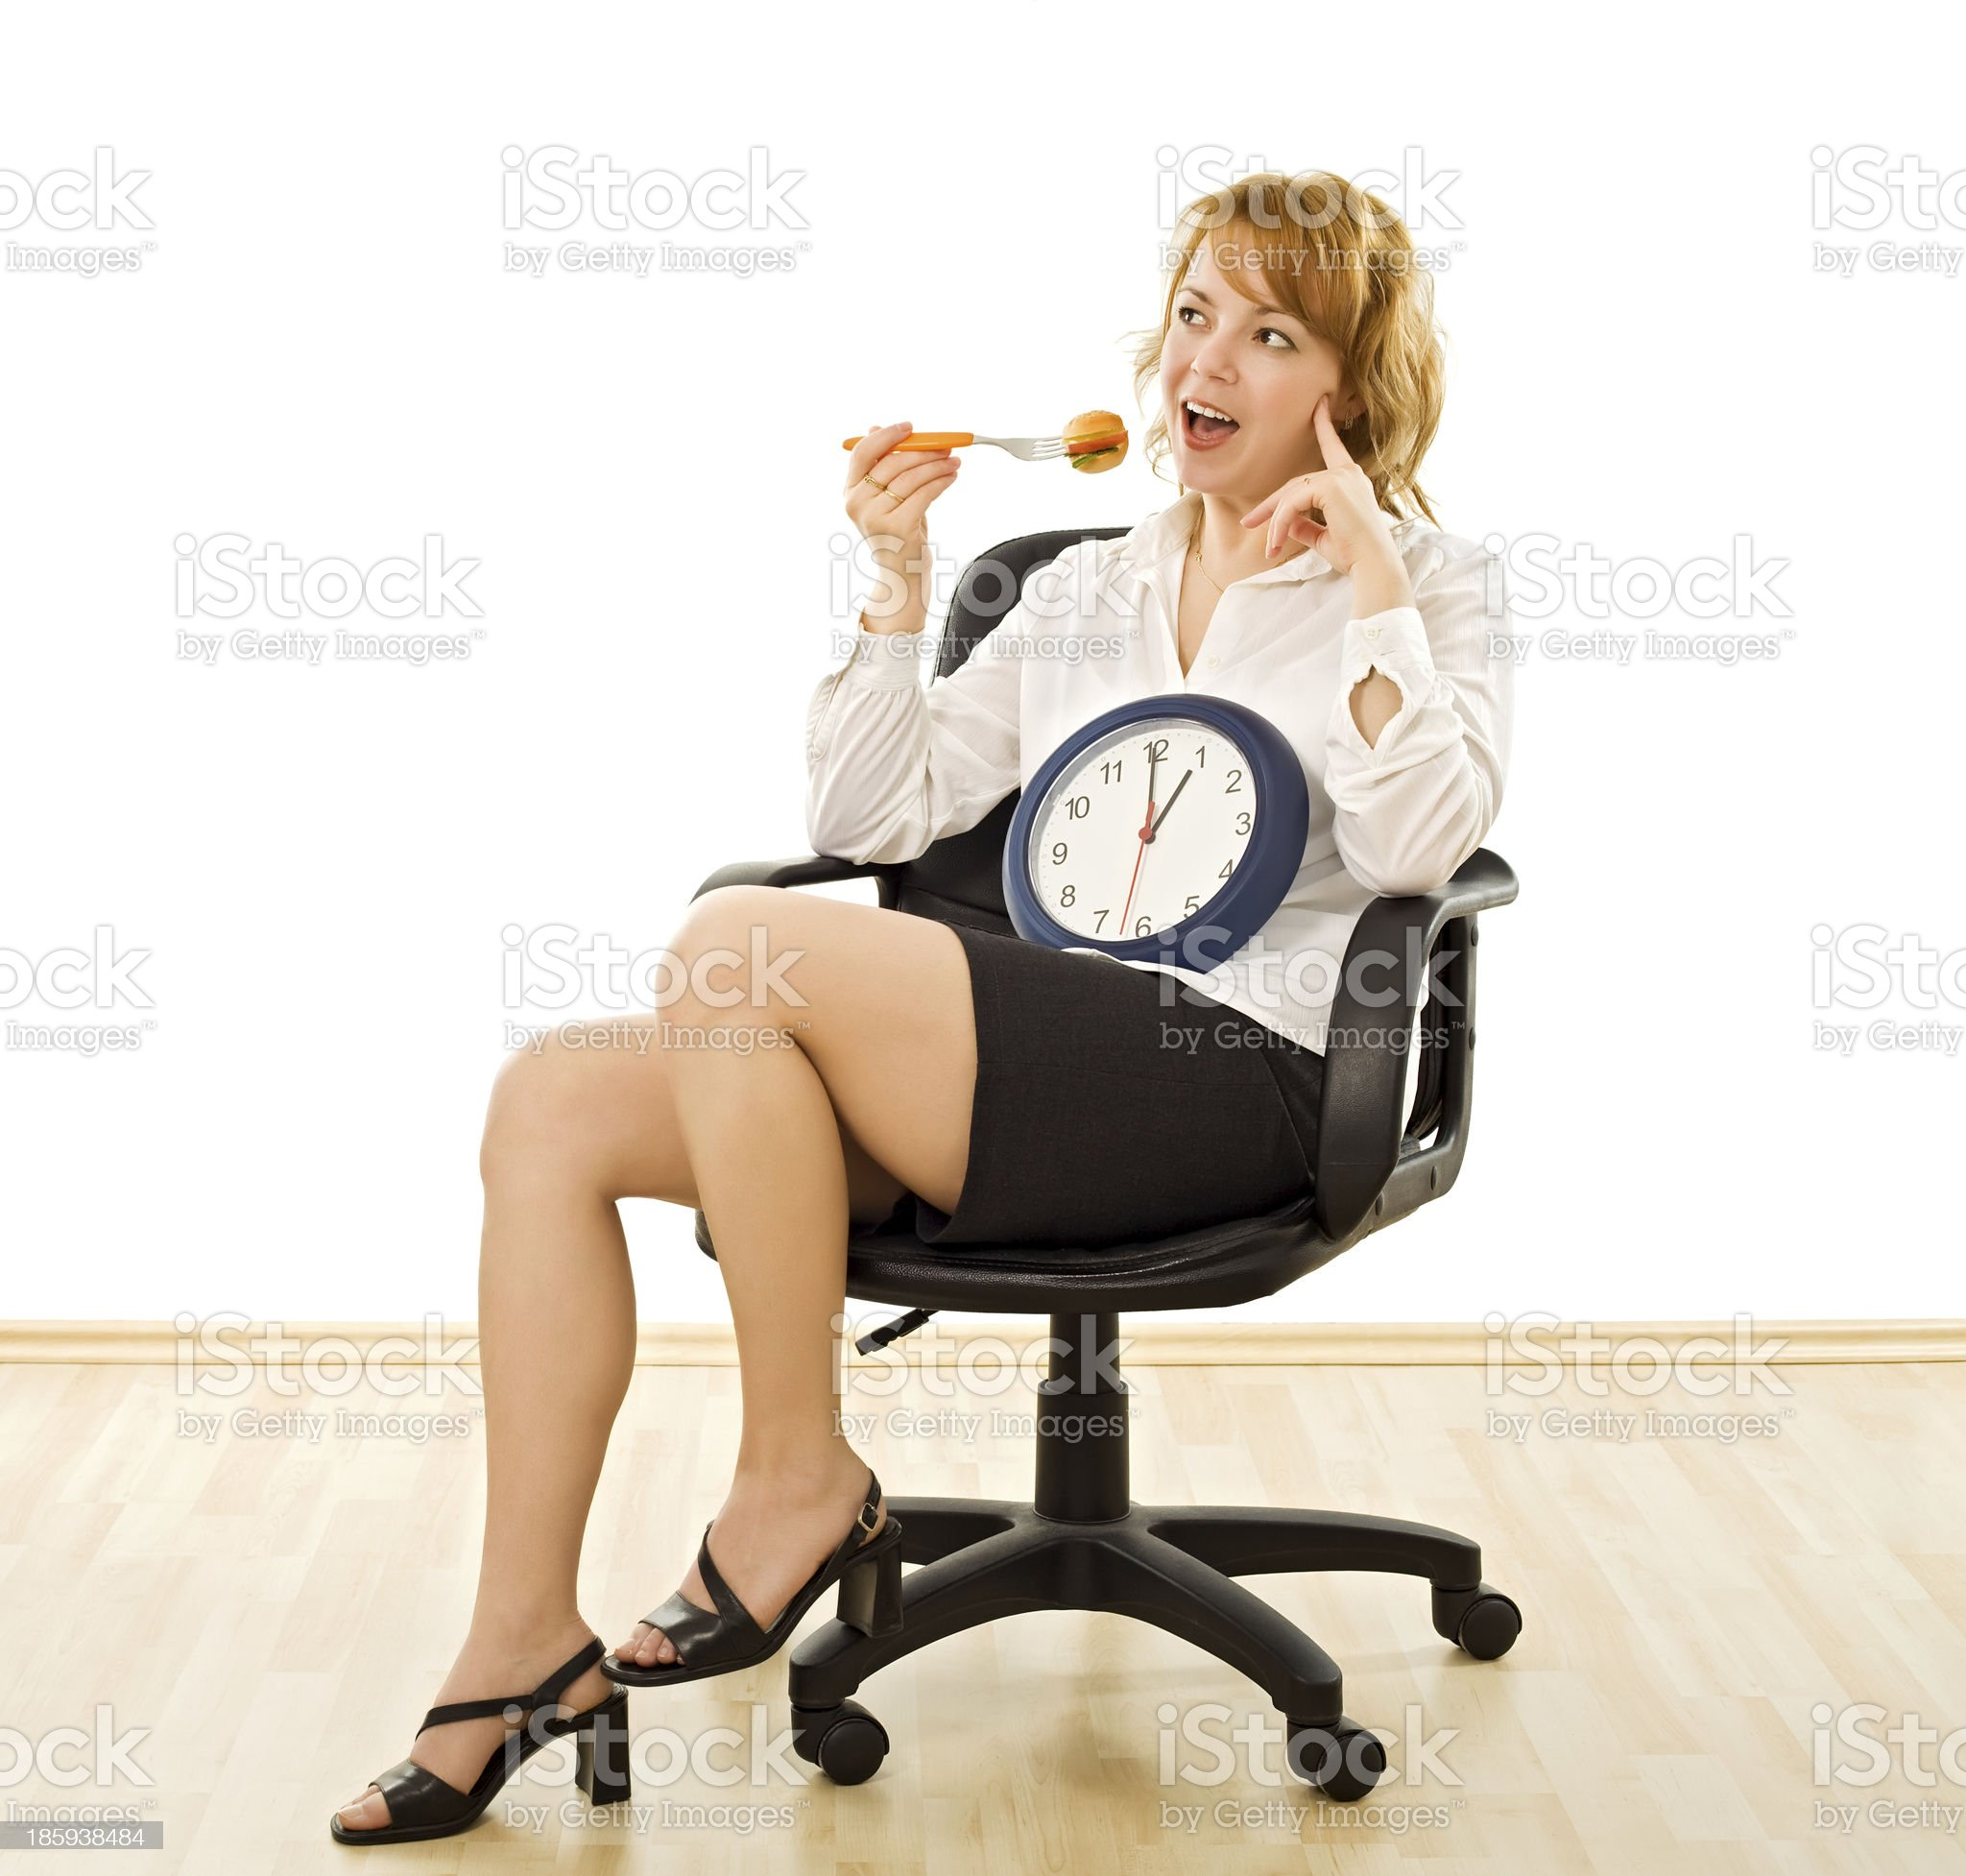 Happy woman in lunch-time royalty-free stock photo